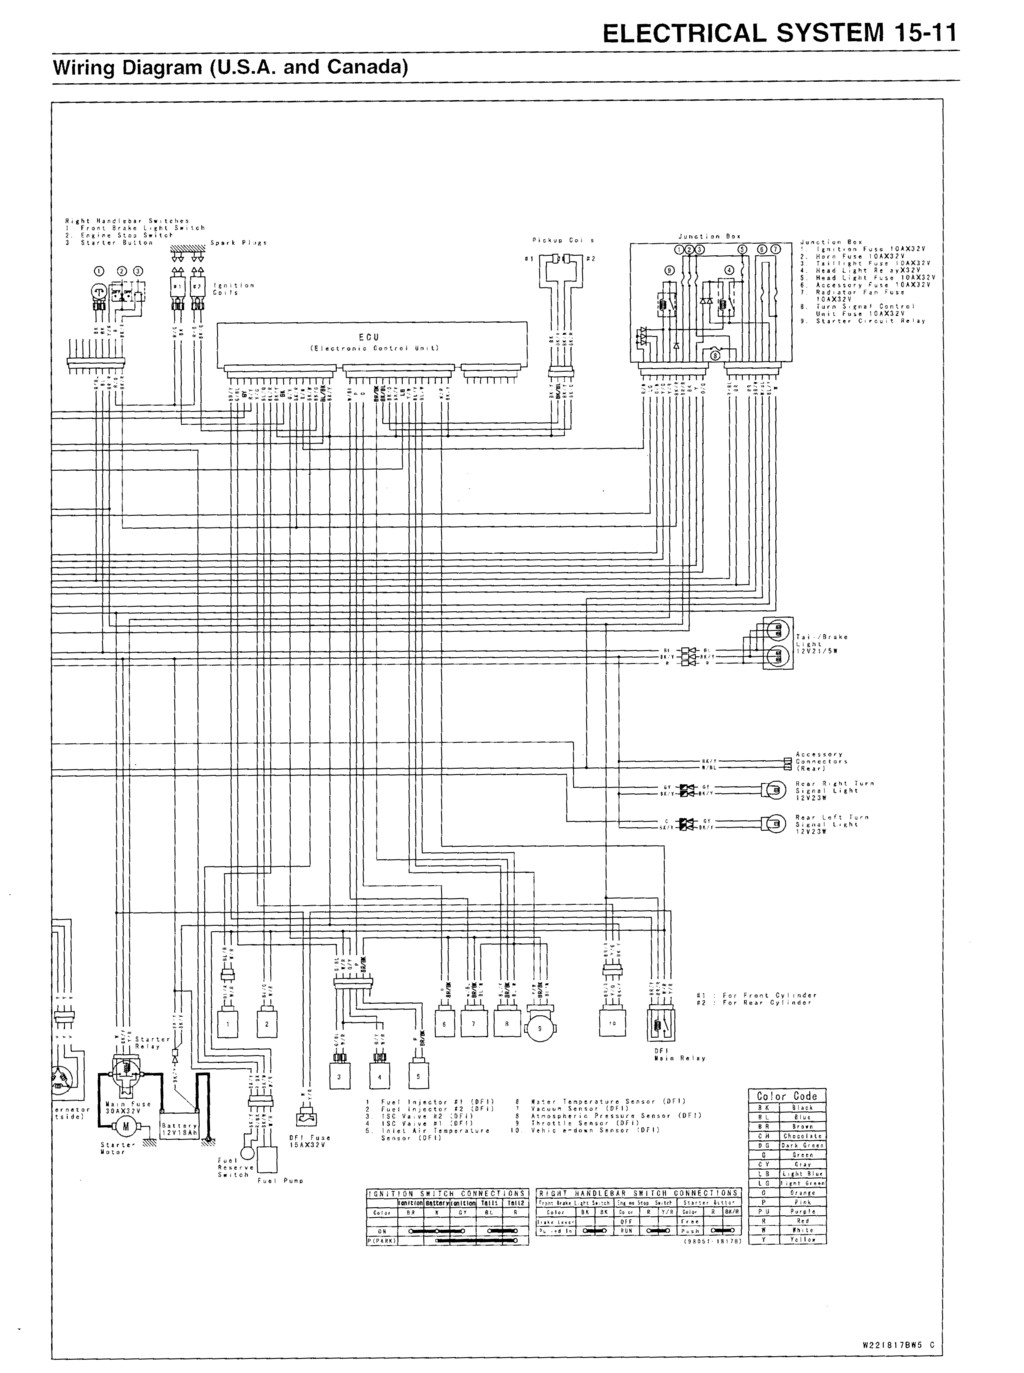 Wiring Systems Rc109 Tradeselect Single Pole Combination Toggle Switch Vn Computer But Not In Carvnefiwiringdiagram Wire Center Vulcan Diagrams Gadget S Fixit Page Rh Gadgetsfixitpage Com